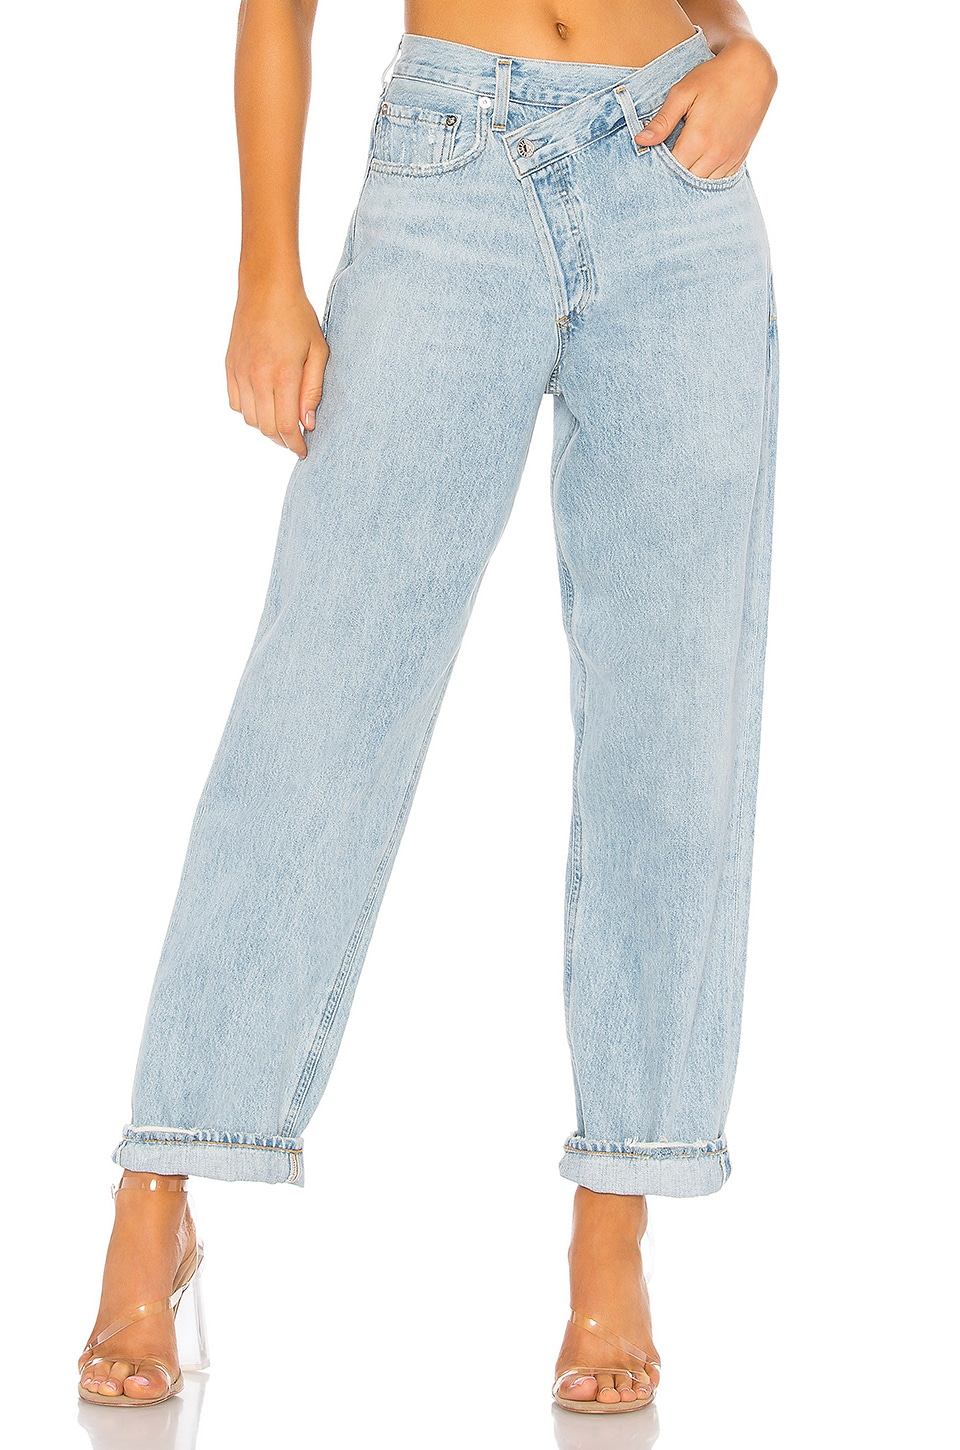 Criss Cross Upsized Jean             AGOLDE                                                                                                       CA$ 259.13 4